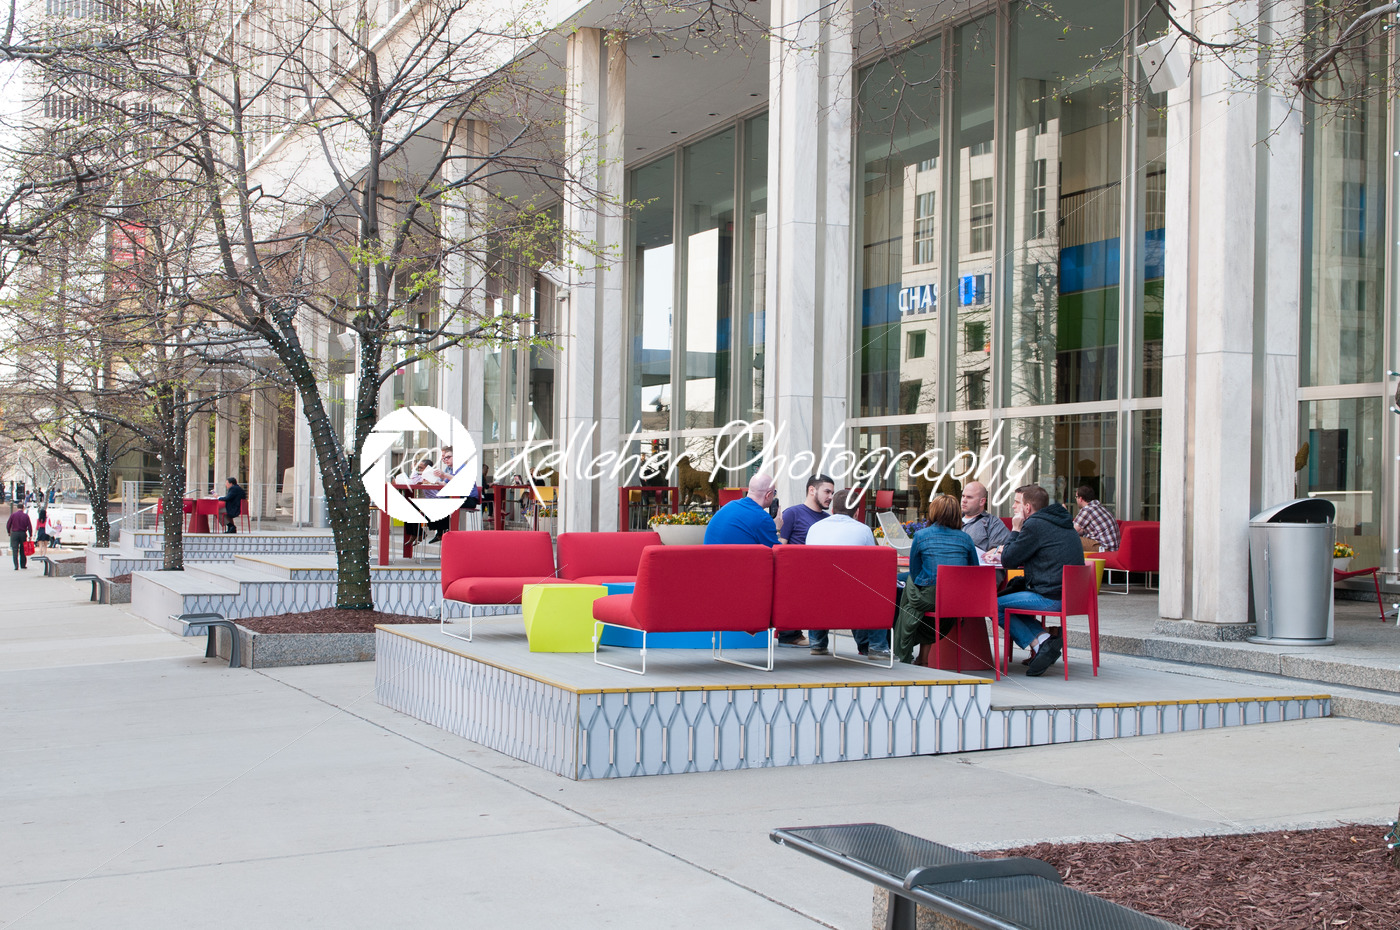 DETROIT, MI – MAY 8: People enjoying the revitalized Campus Martius park in Detroit, MI on May 8, 2014 - Kelleher Photography Store